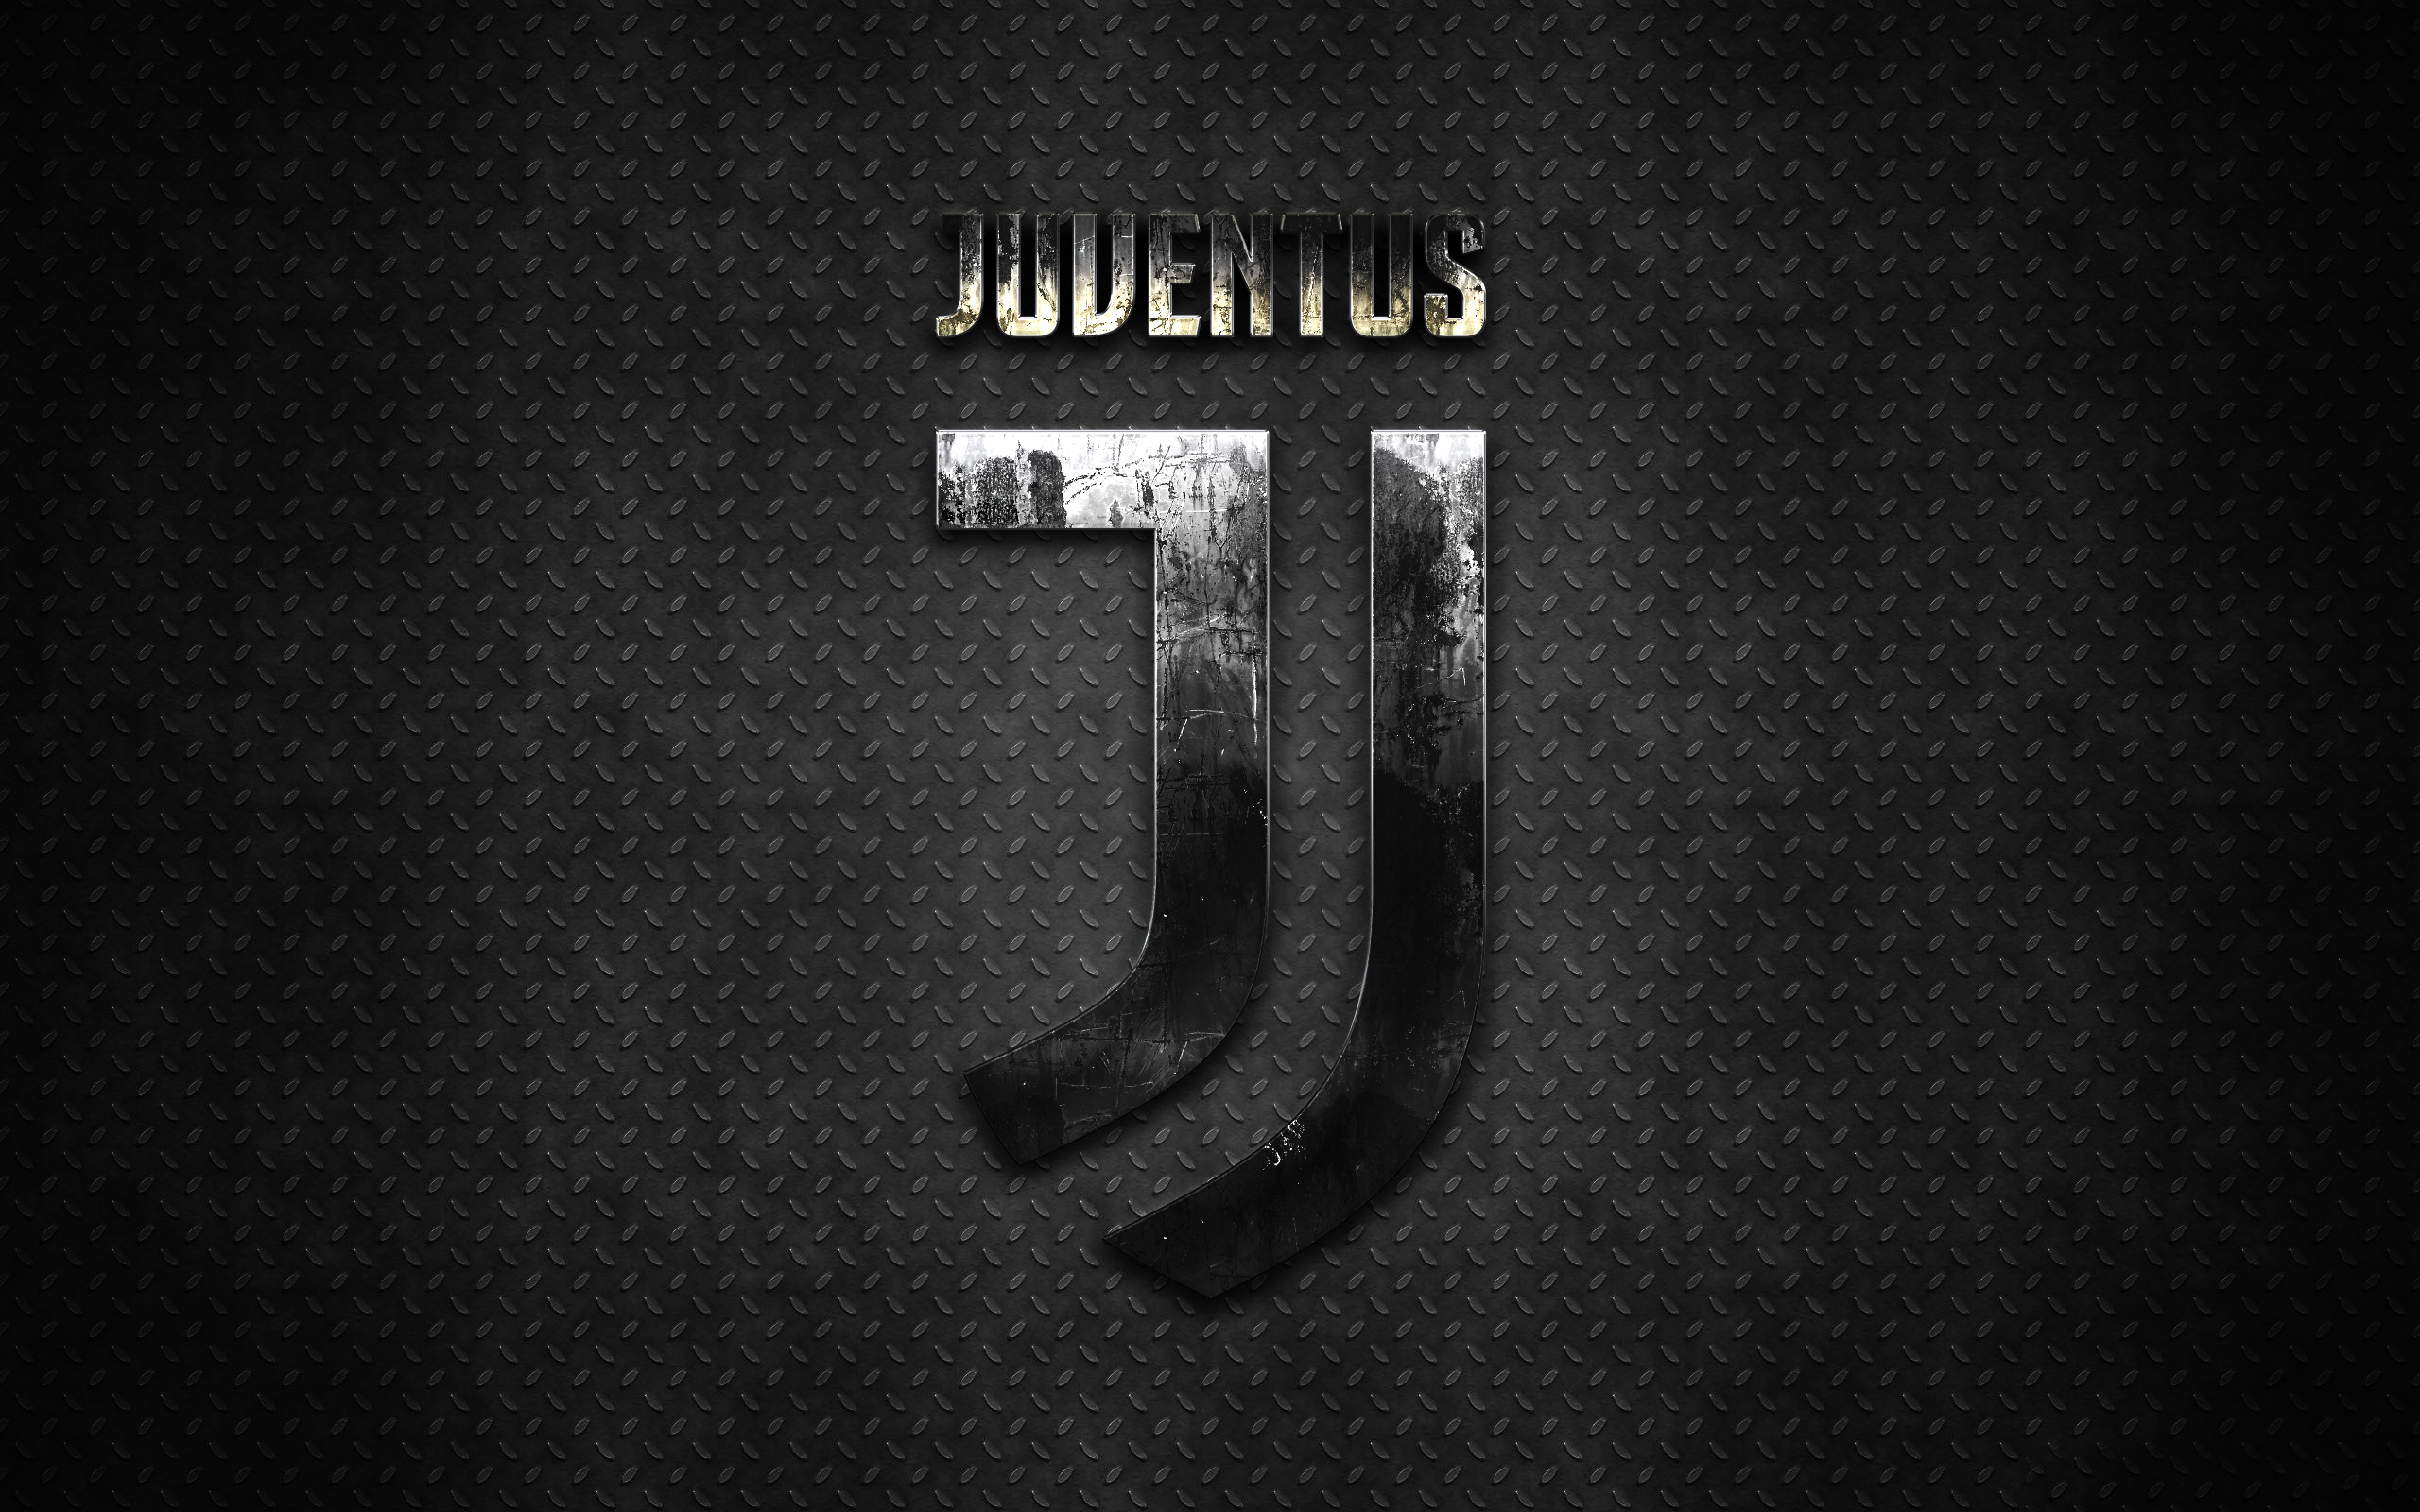 Juventus Hd Wallpaper Posted By Ethan Sellers